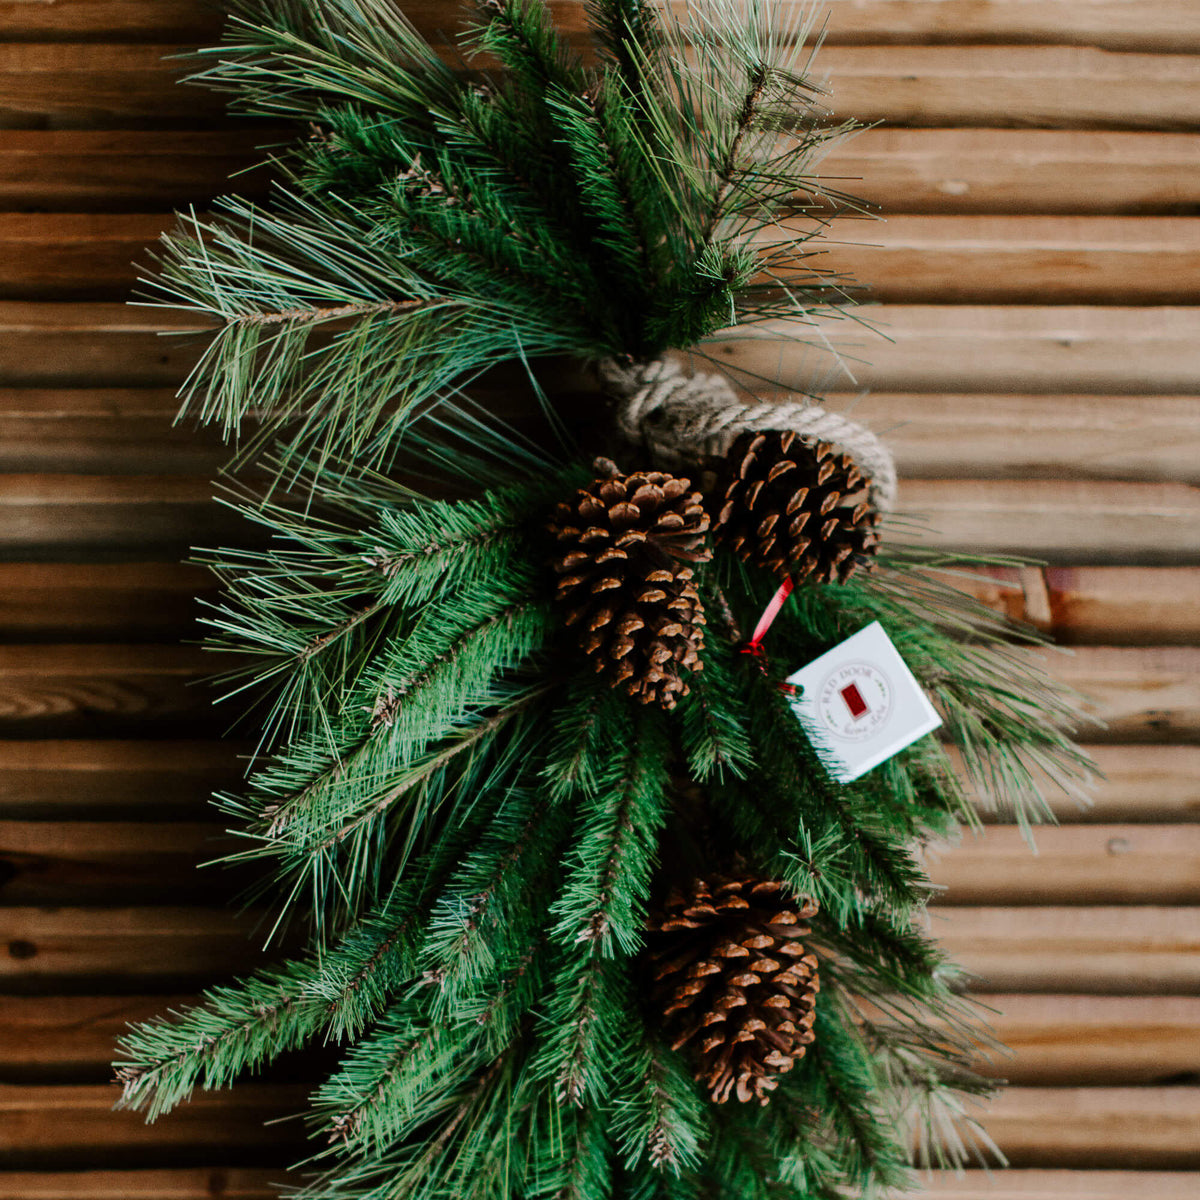 The closeup details of a grand 40 inch long faux pine drop or swag wrapped in a natural rope and adorned with pinecones for a winter front door decor